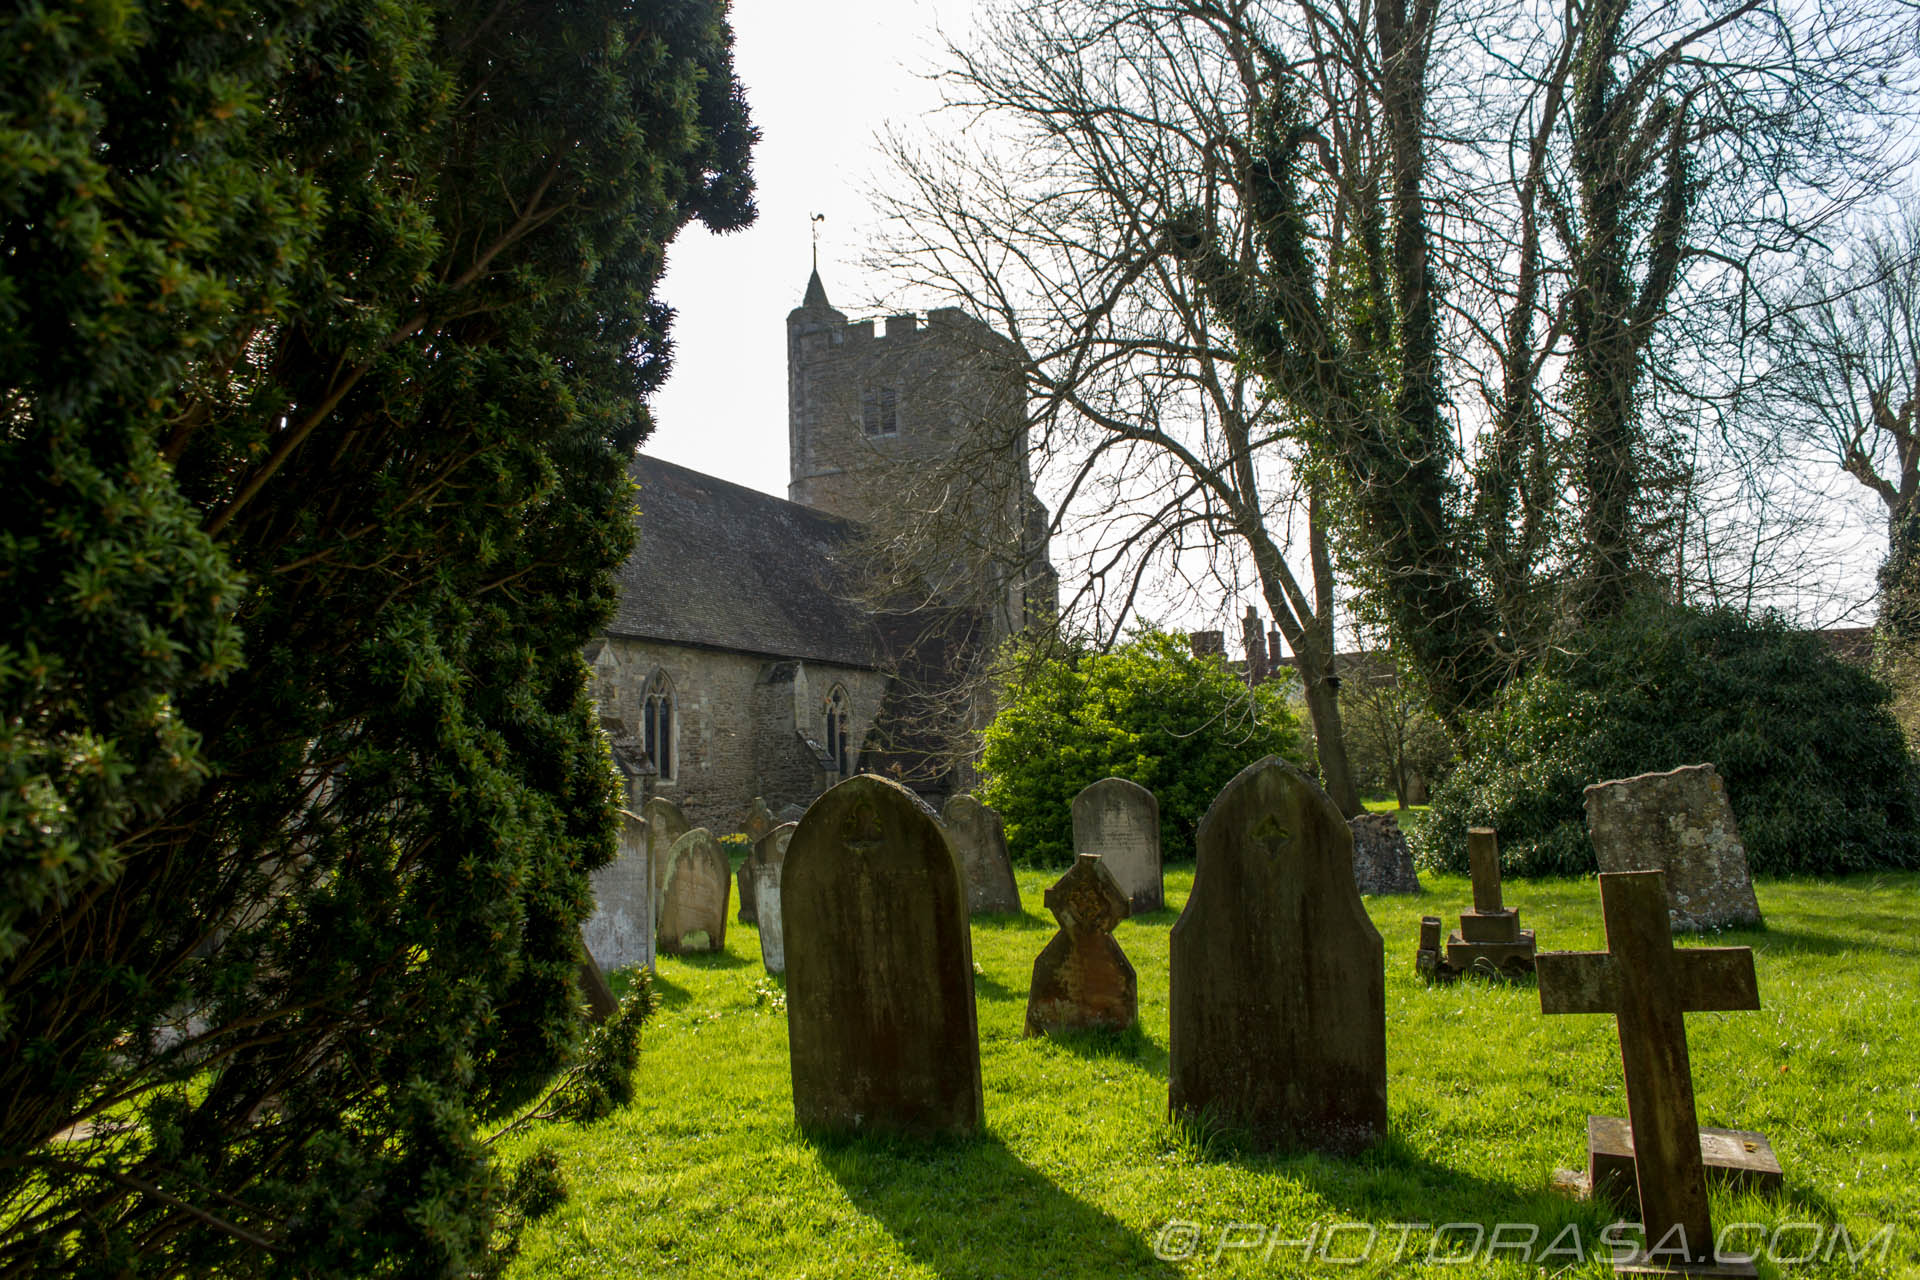 http://photorasa.com/saints-church-staplehurst-kent/graves-and-staplehurst-church/